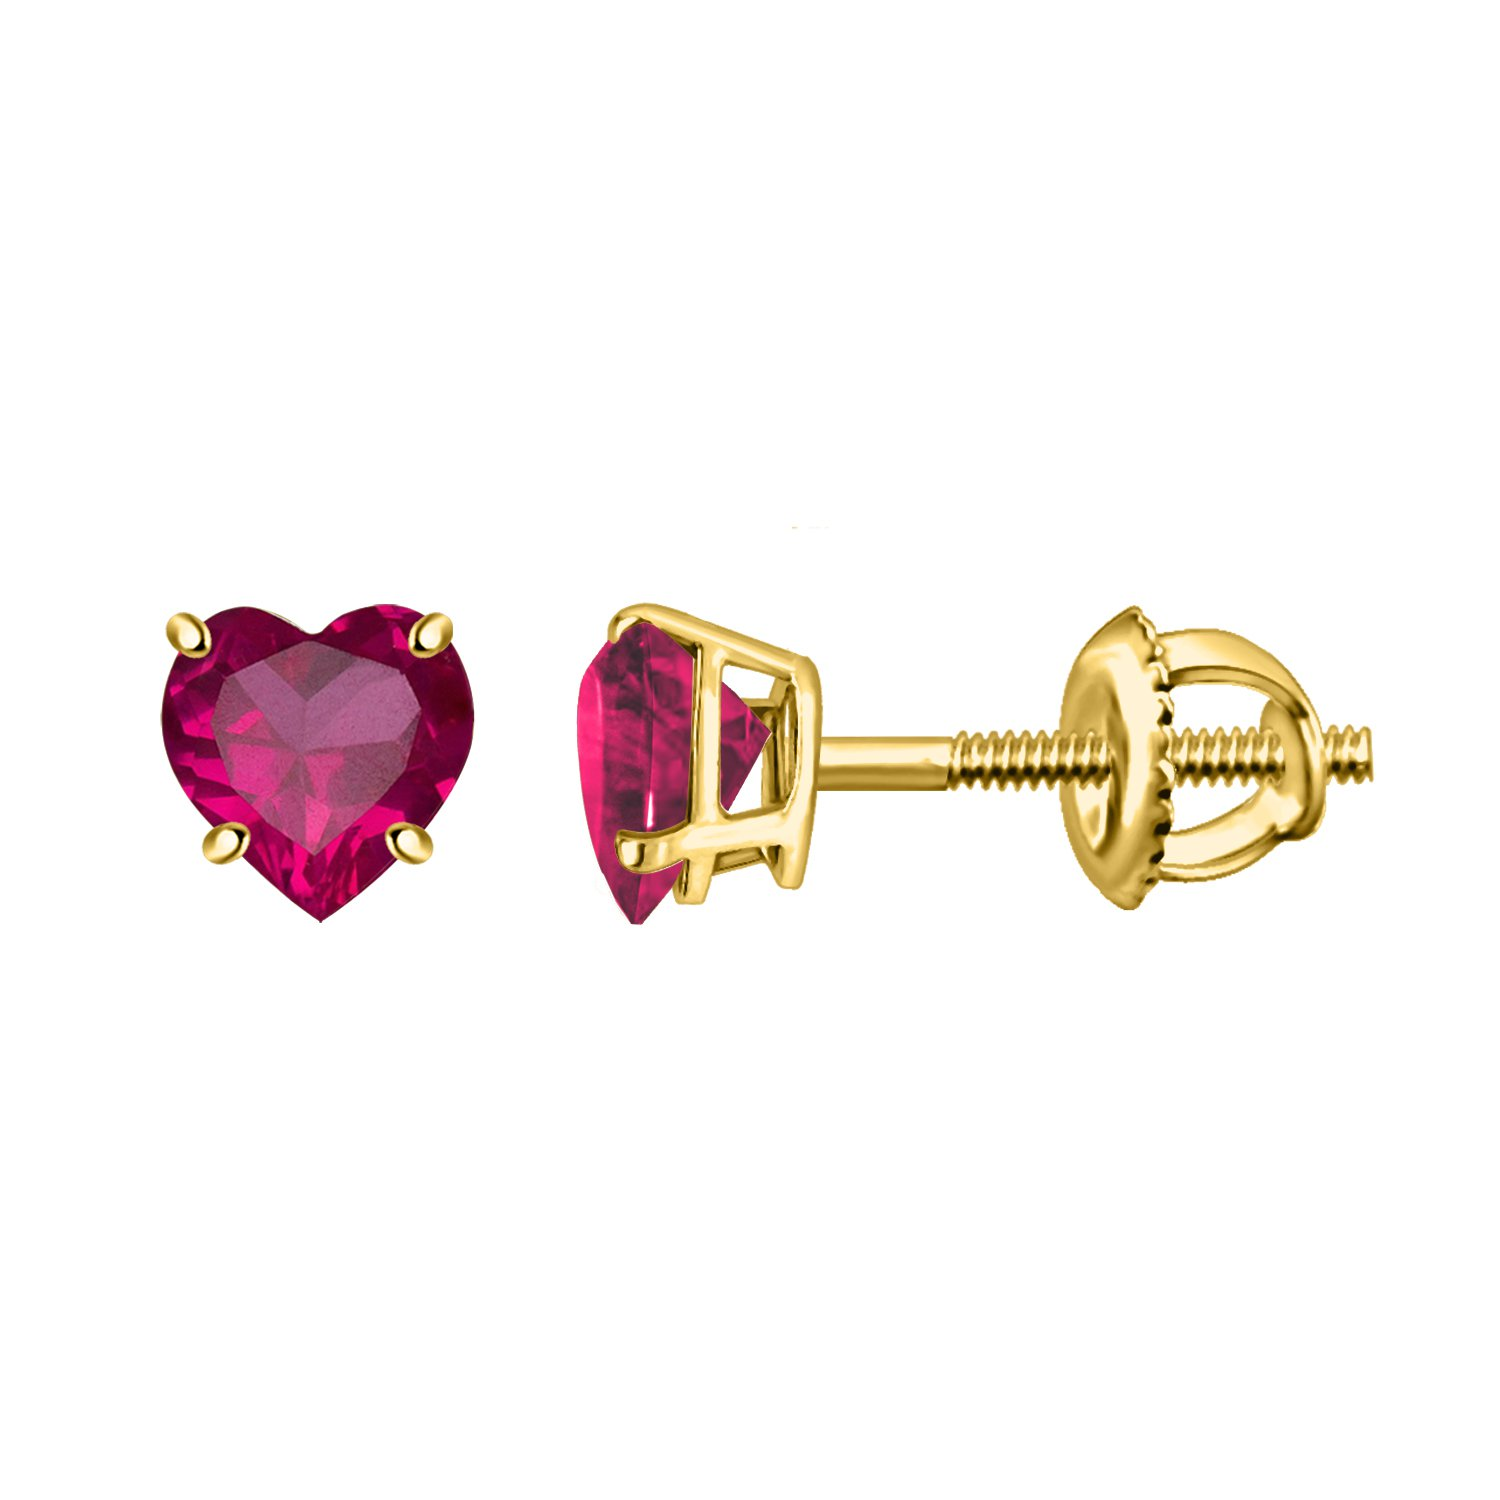 0.94CT Heart Shape Red Ruby Solitaire Yellow Gold Finishing Stud Earrings In 925 Sterling Silver